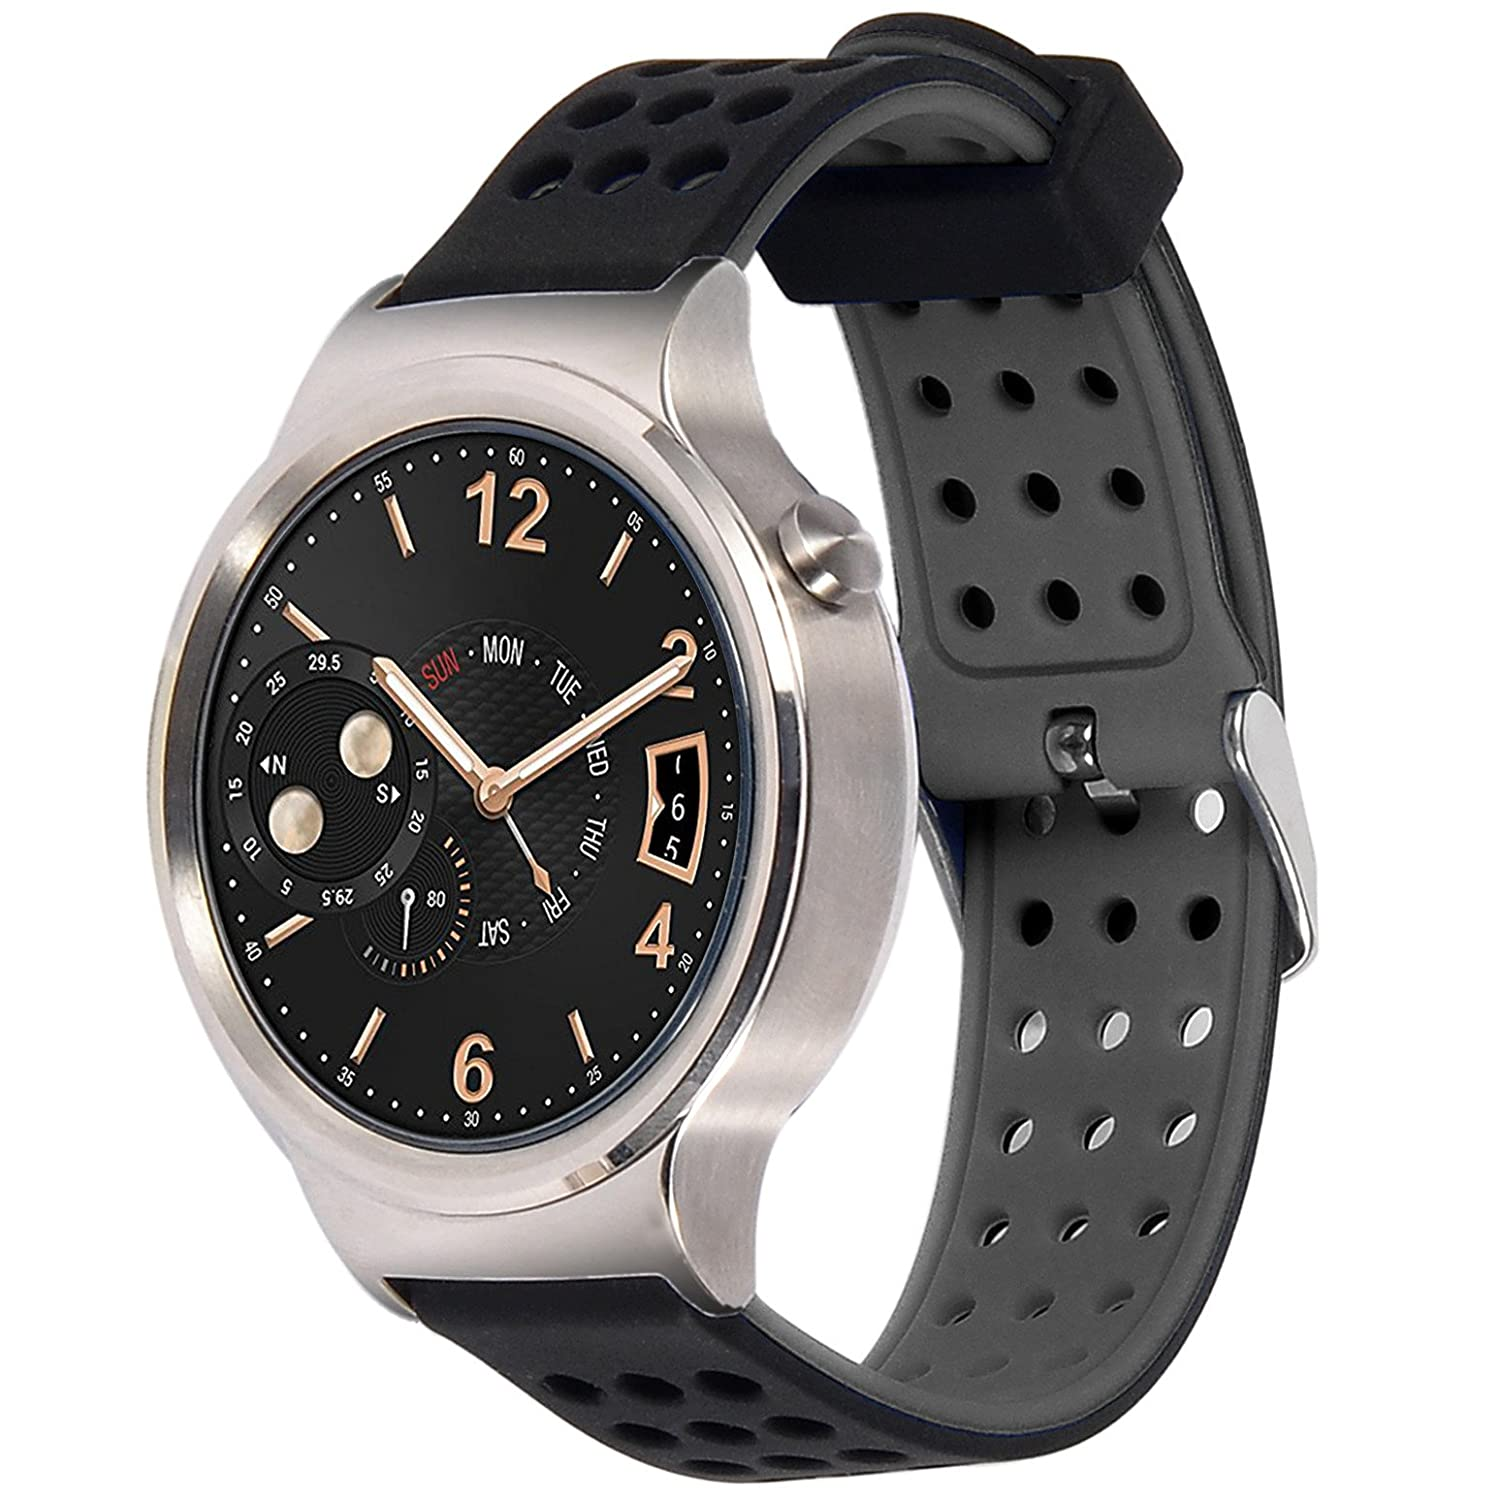 huawei fit smartwatch. greatfine 18mm width sport smart watch band wrist strap for huawei w1 , fit withings activite and all 18mm (blackgrey): amazon.co.uk: smartwatch